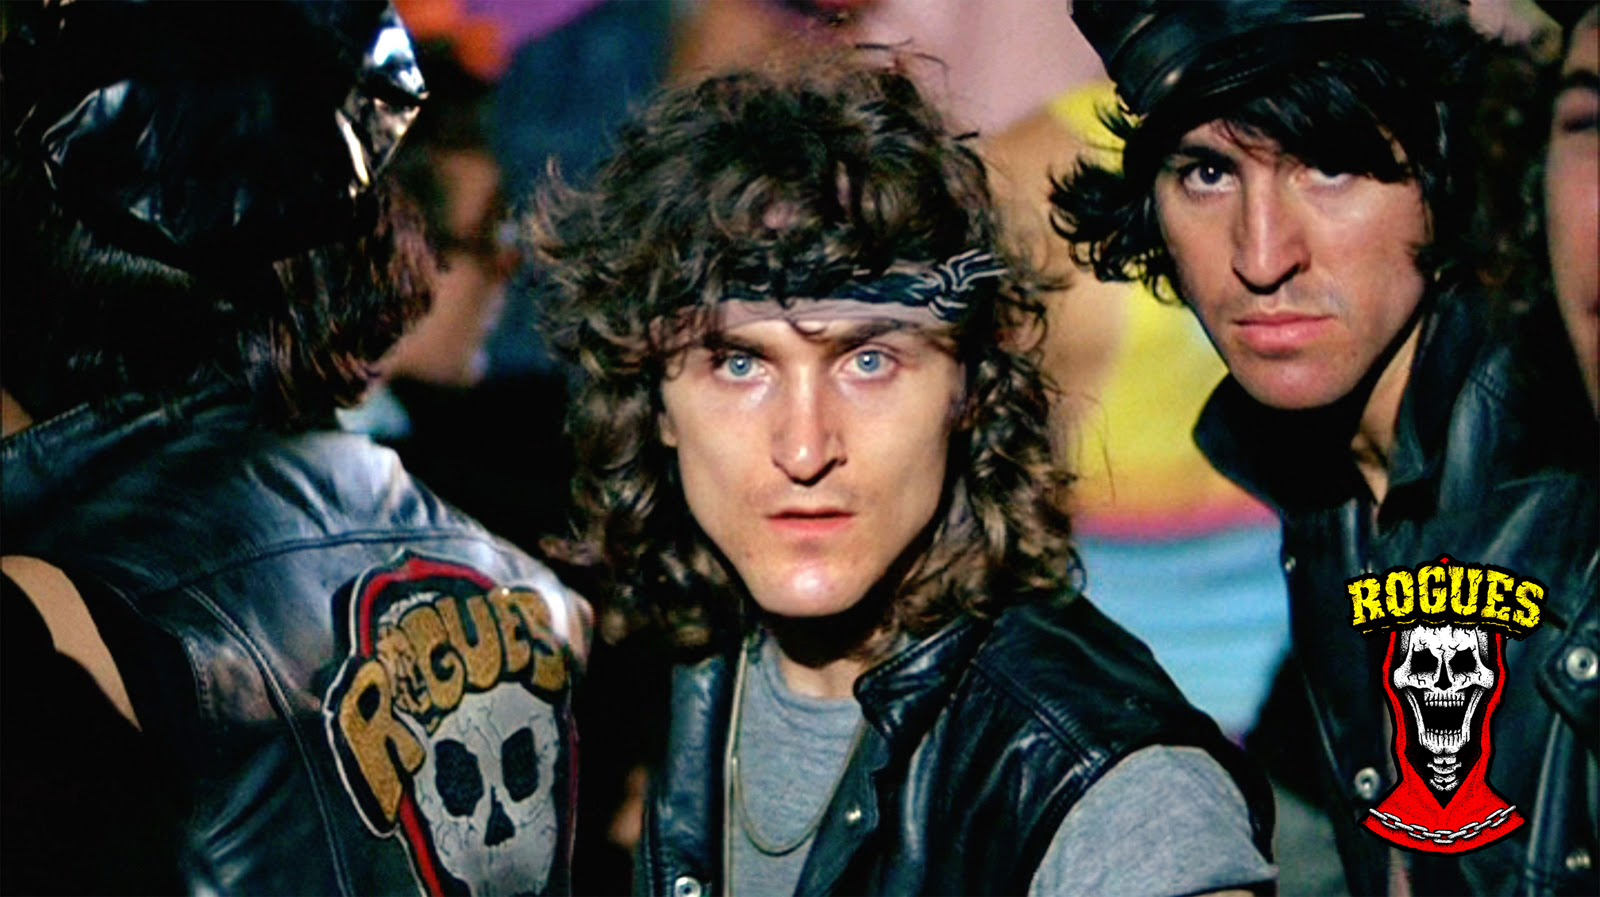 The Warriors at 40: from Walter Hill to Coney Island - The Hot Corn